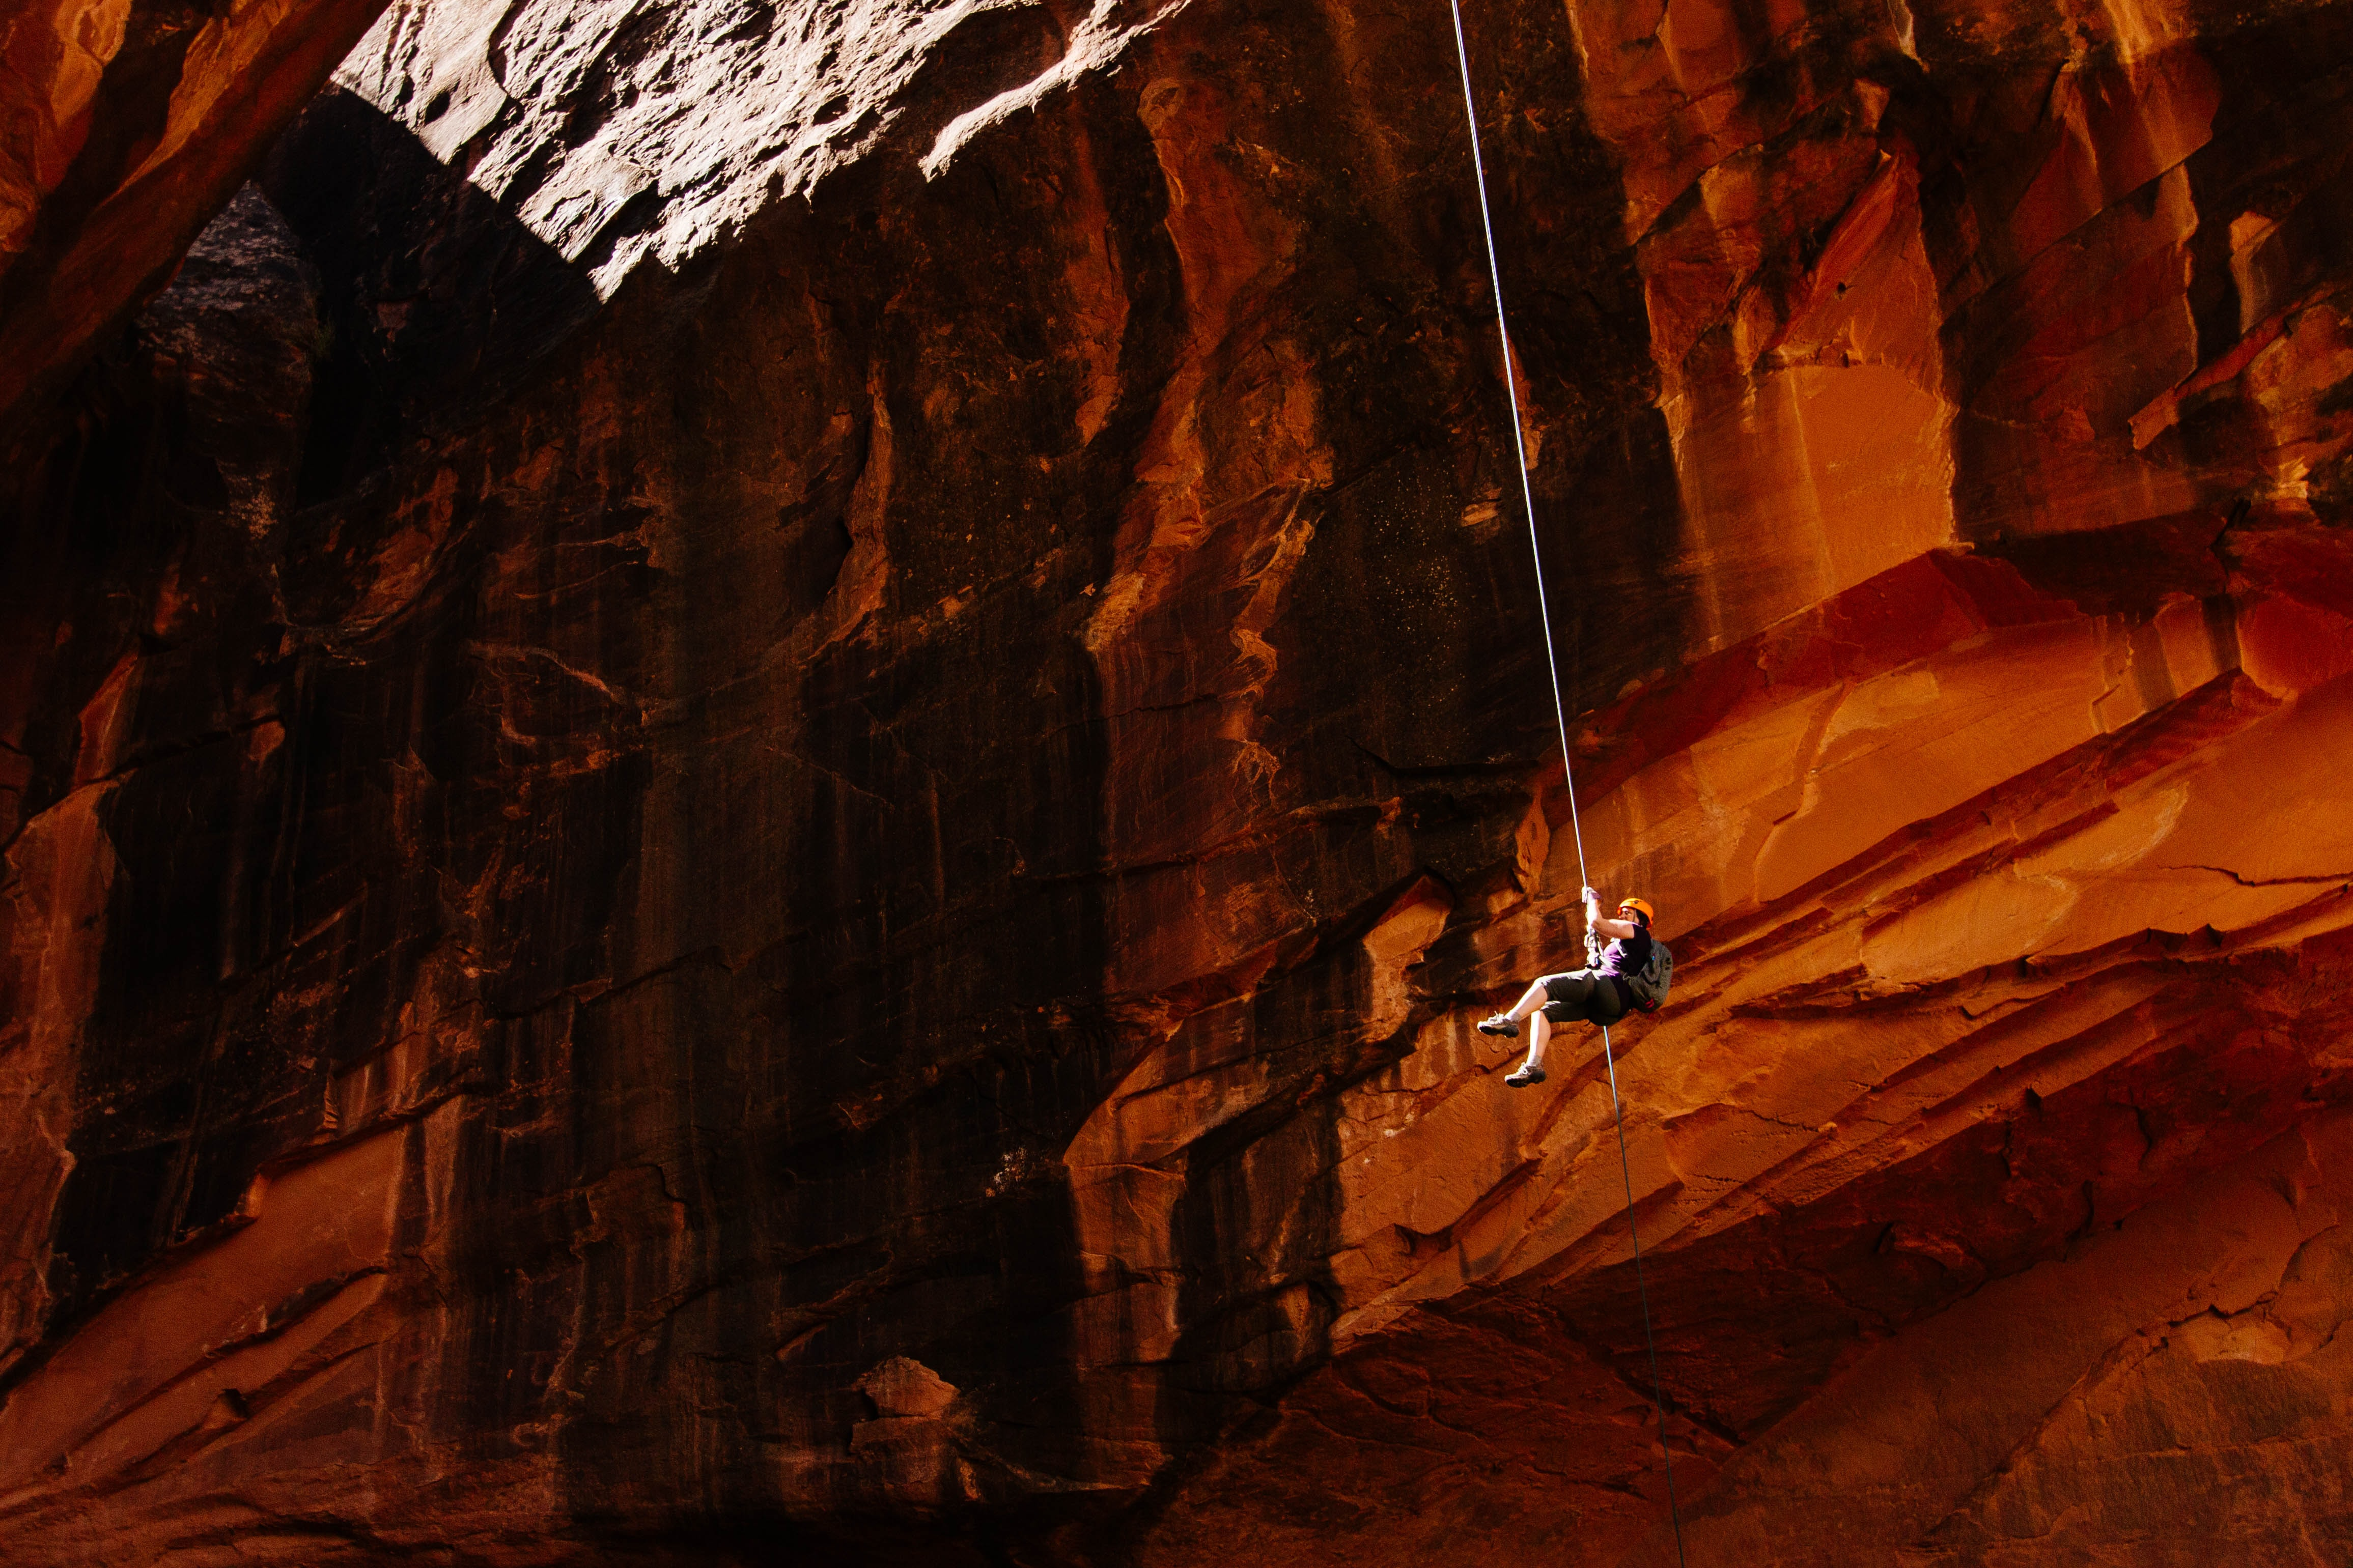 Climber belays down the steep side of a red mountain in Moab